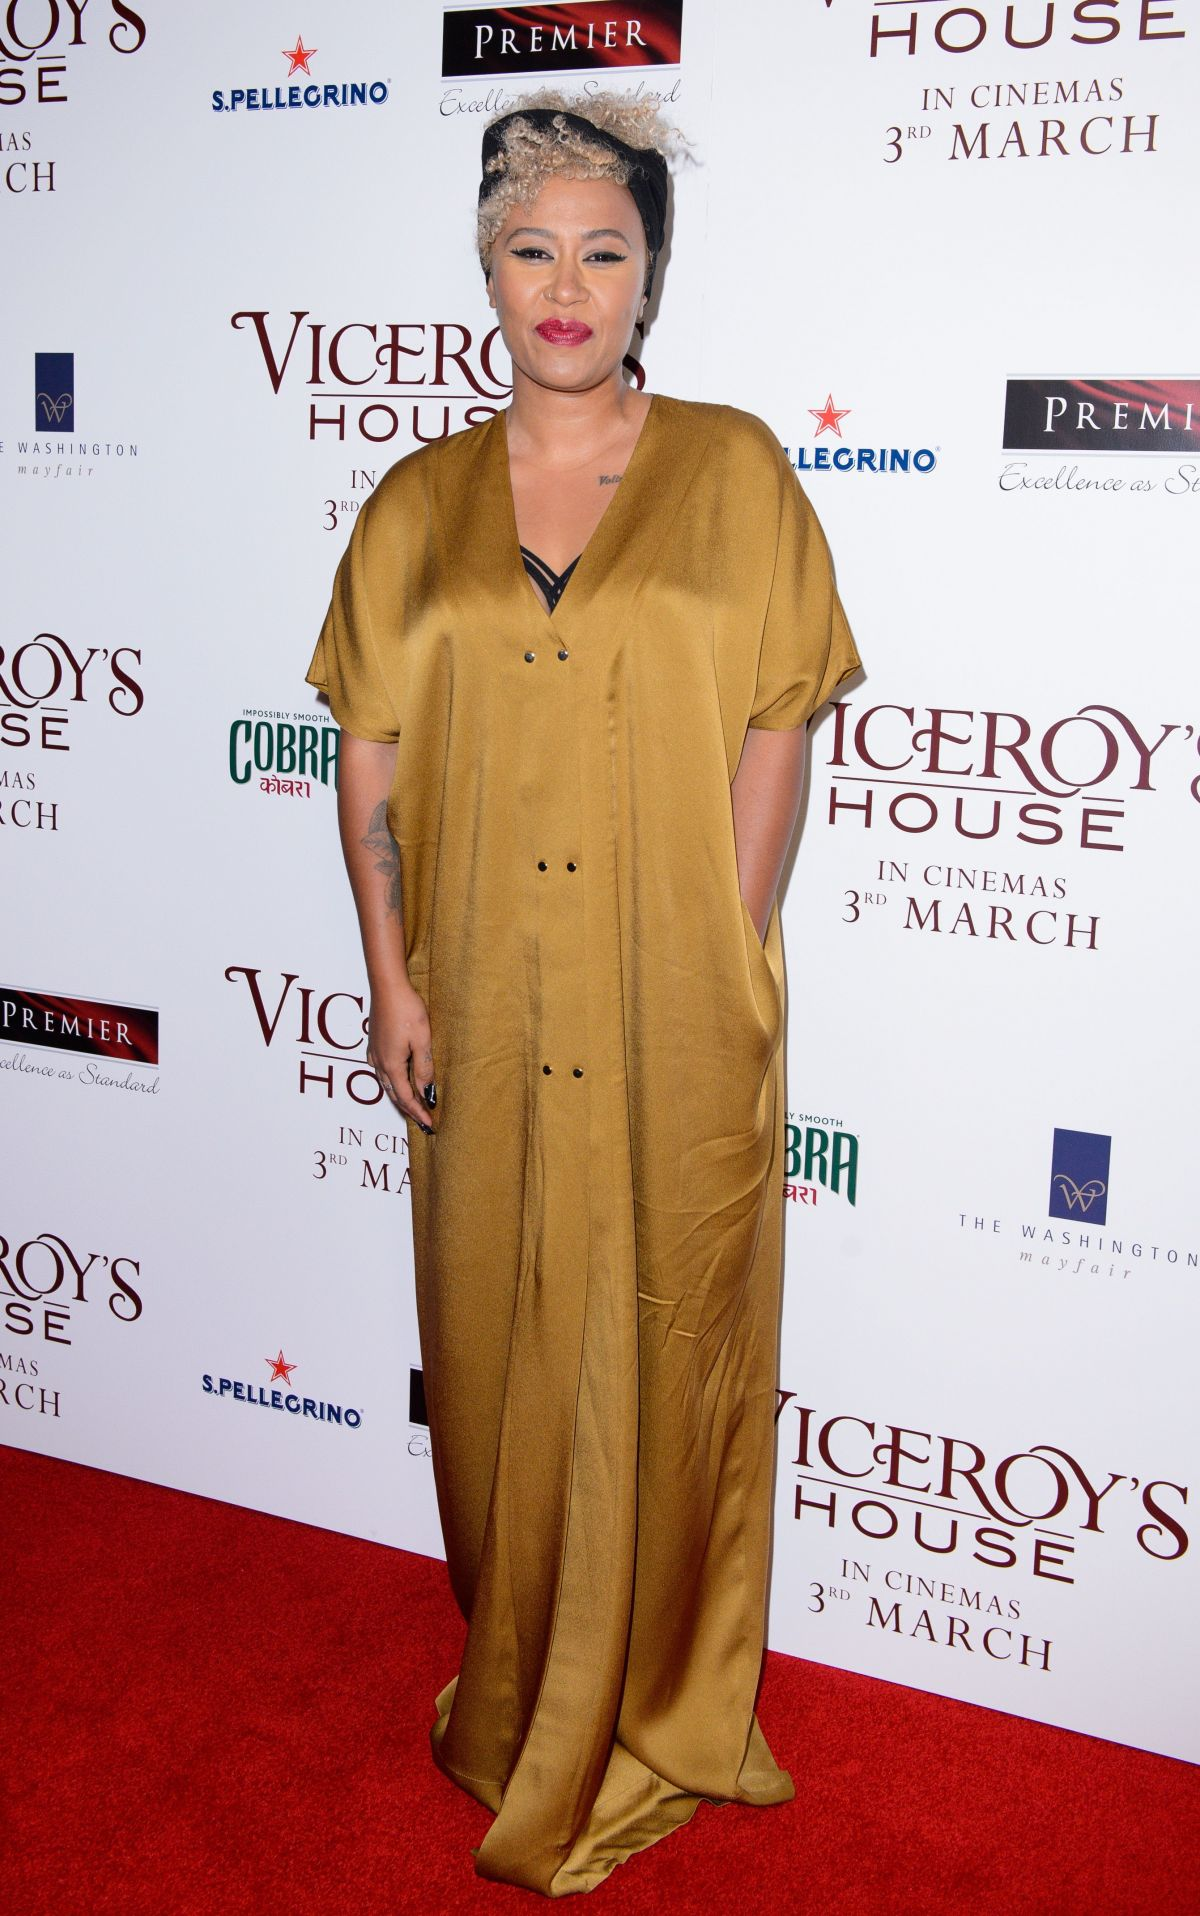 EMELI SANDE at Viceroy's House Premiere in London 02/21/2017